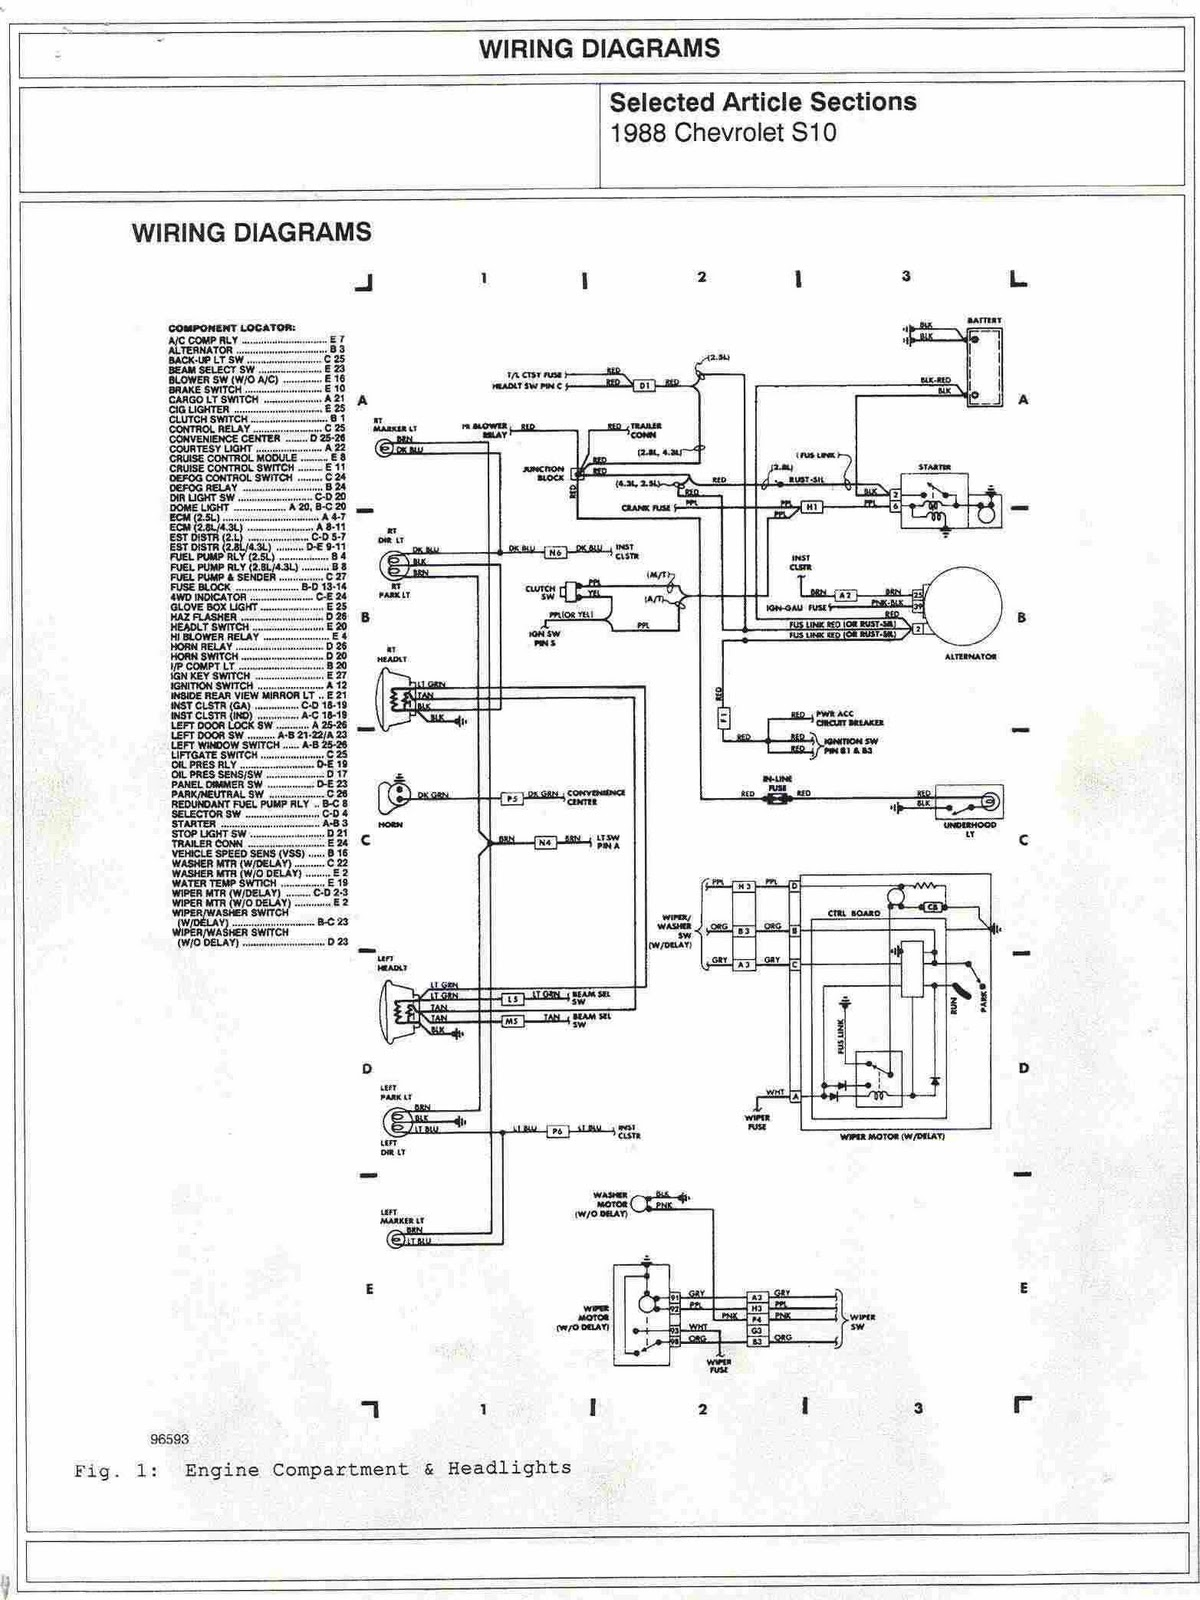 1988 s10 wiring diagram wiring diagram data oreo rh 15 9 drk pink de